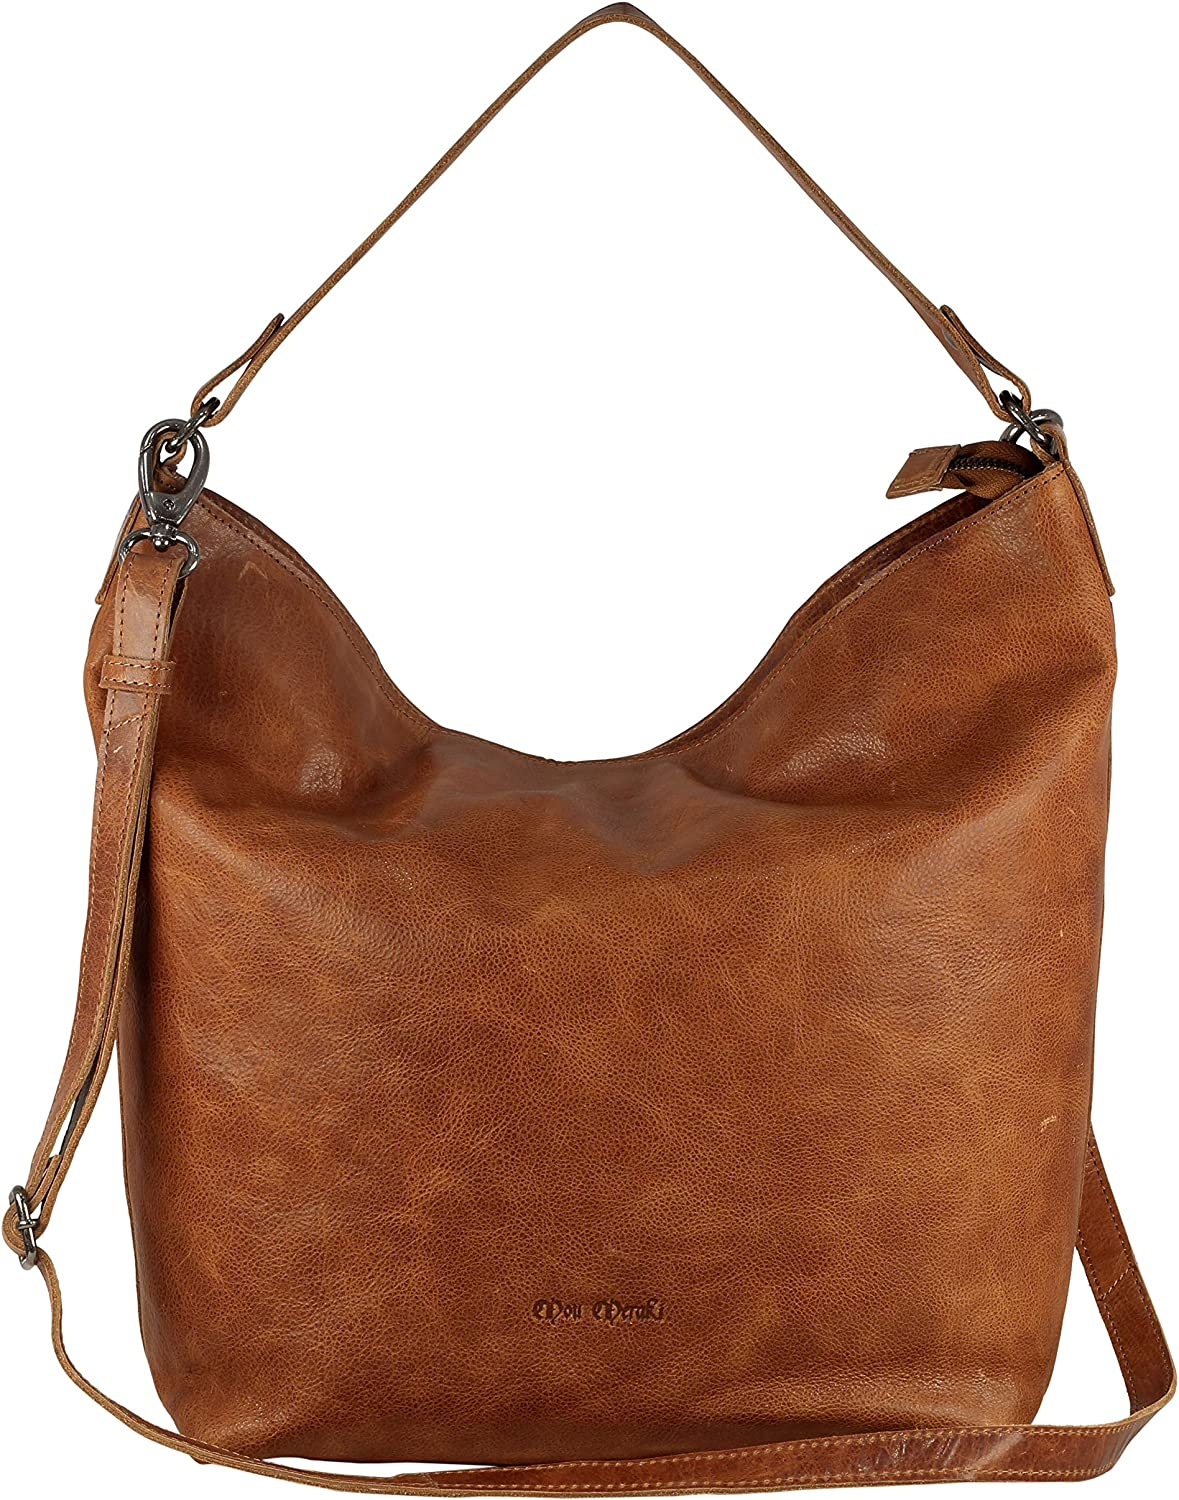 Handbags for Women Large Designer Ladies Hobo Shoul the price bag Over Safety and trust